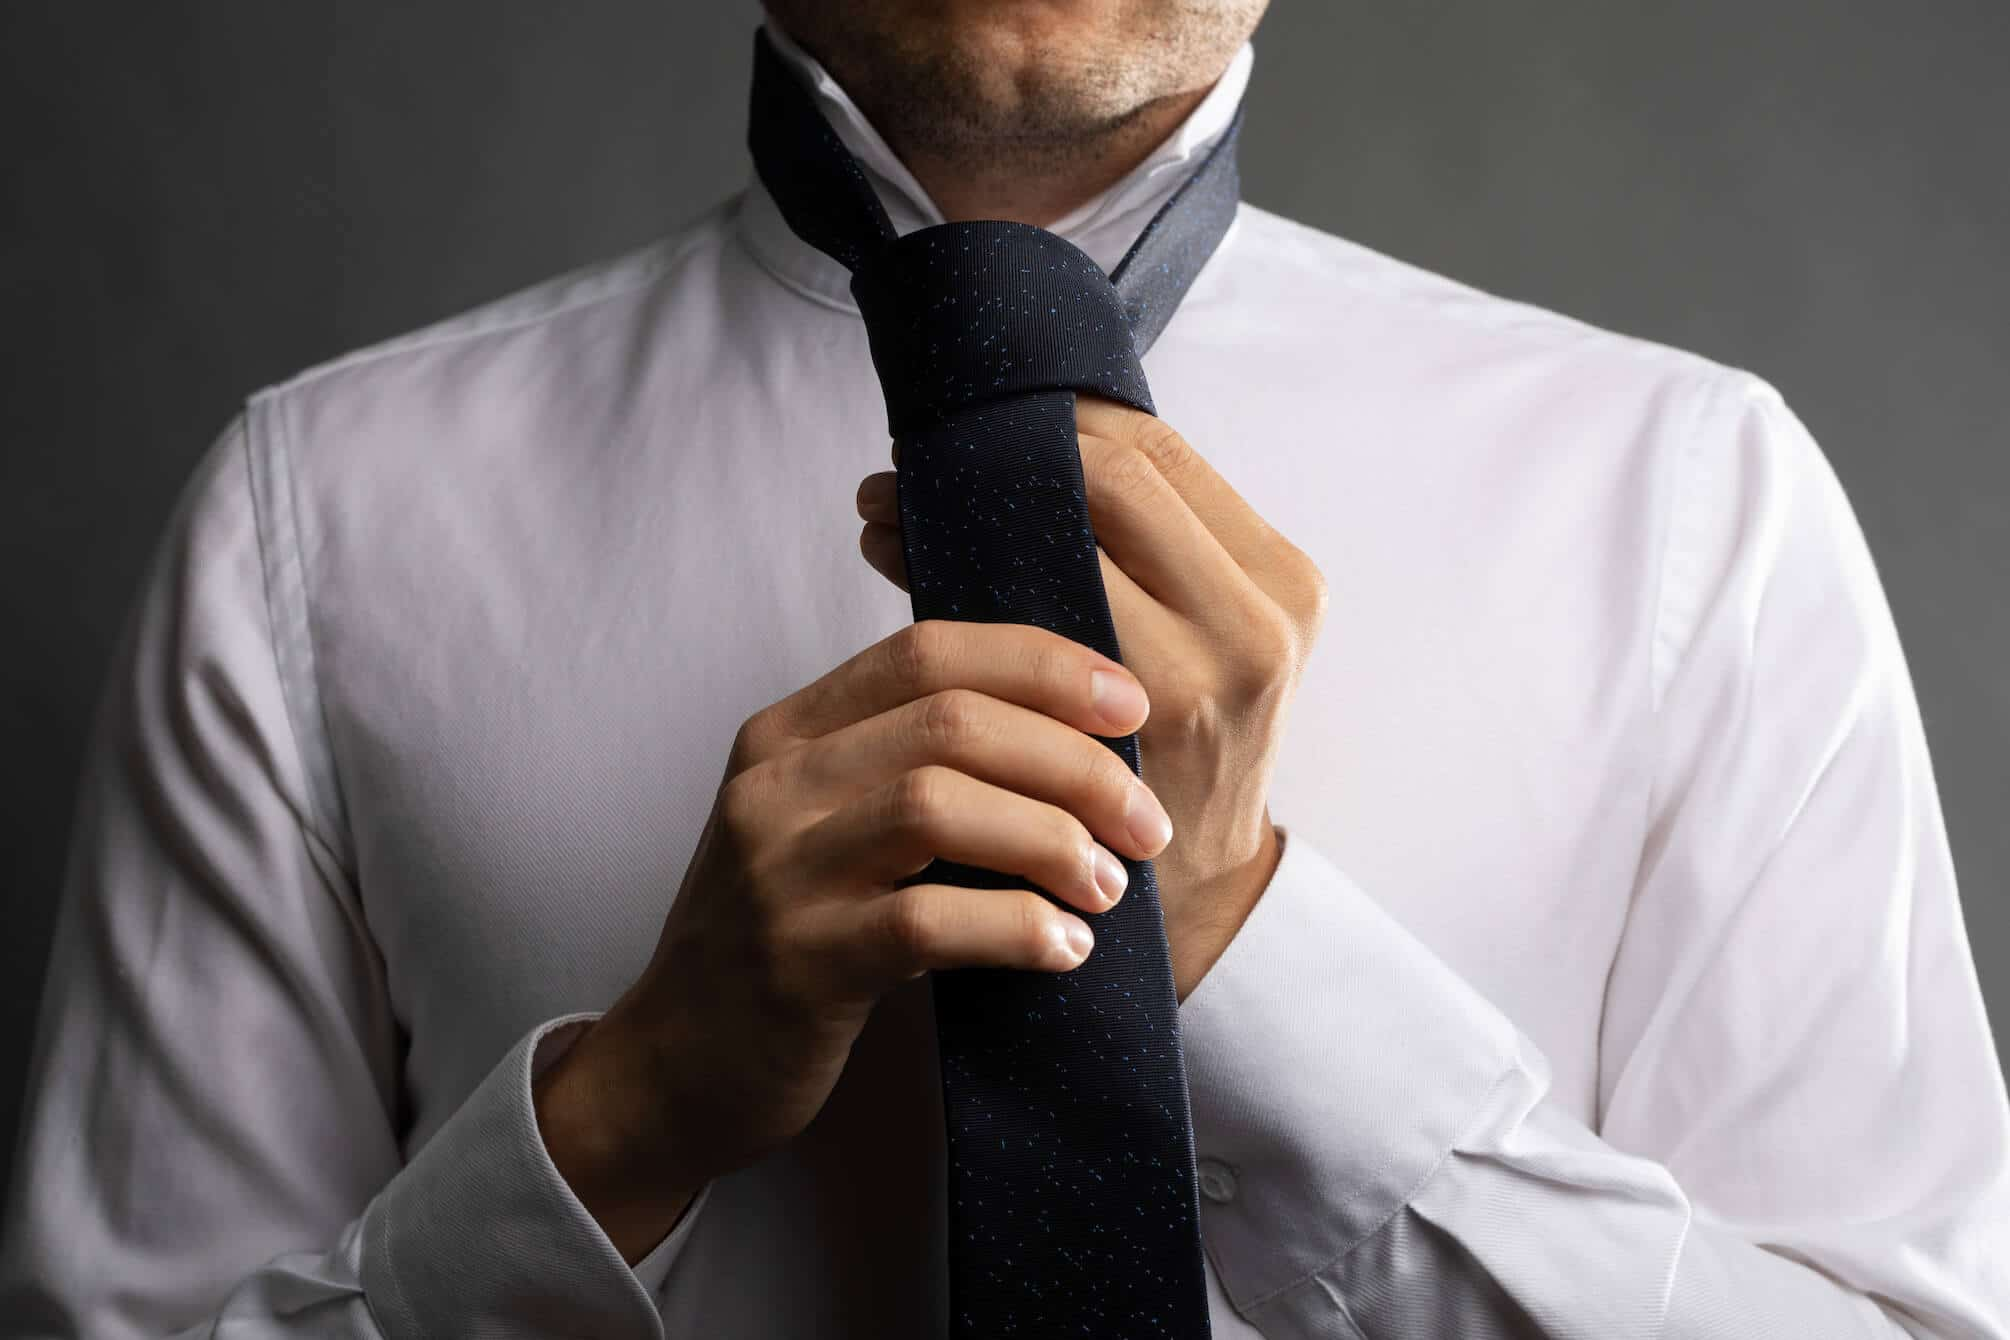 Half Windsor knot step 9